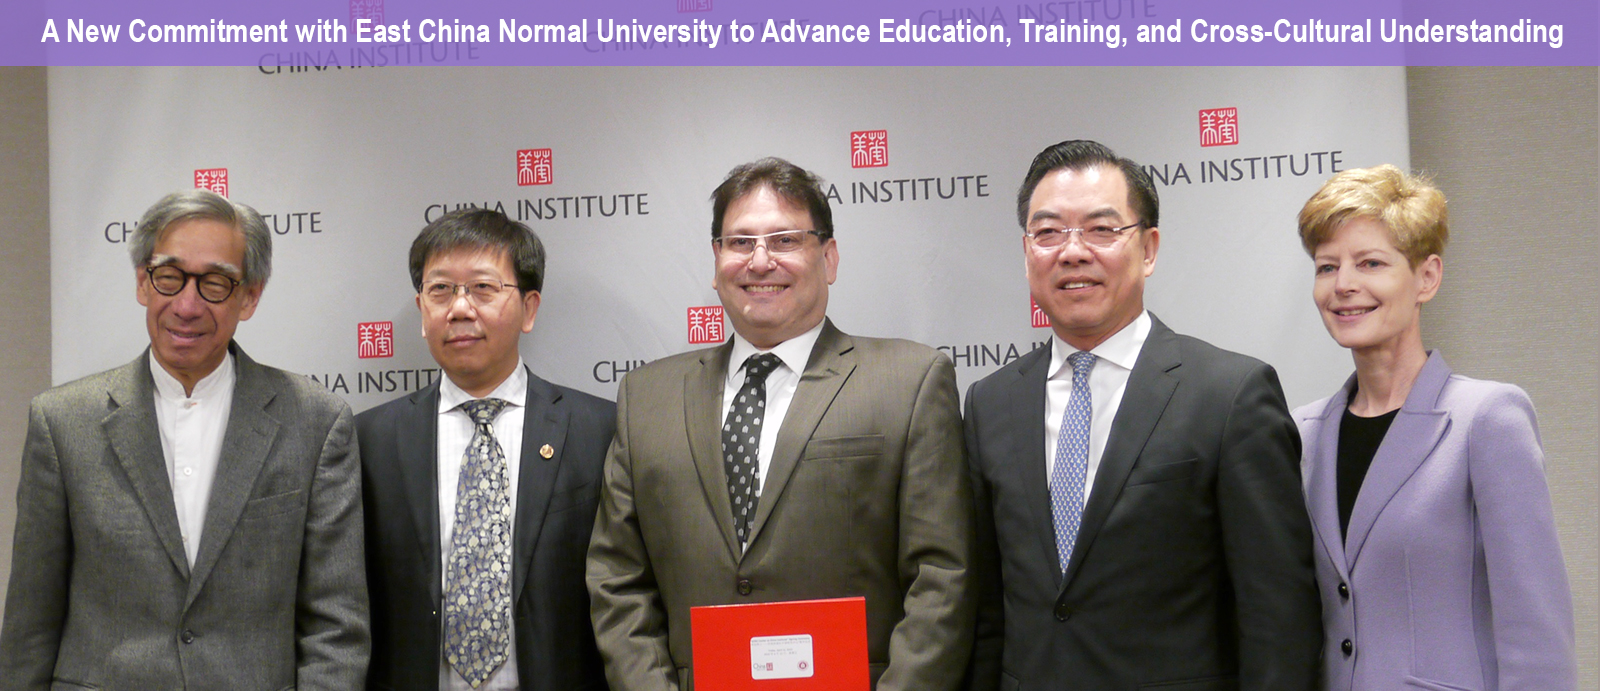 China Institute Establishes <em>East China Normal University Center at China Institute</em> to Advance Education, Training, and Cross-Cultural Understanding